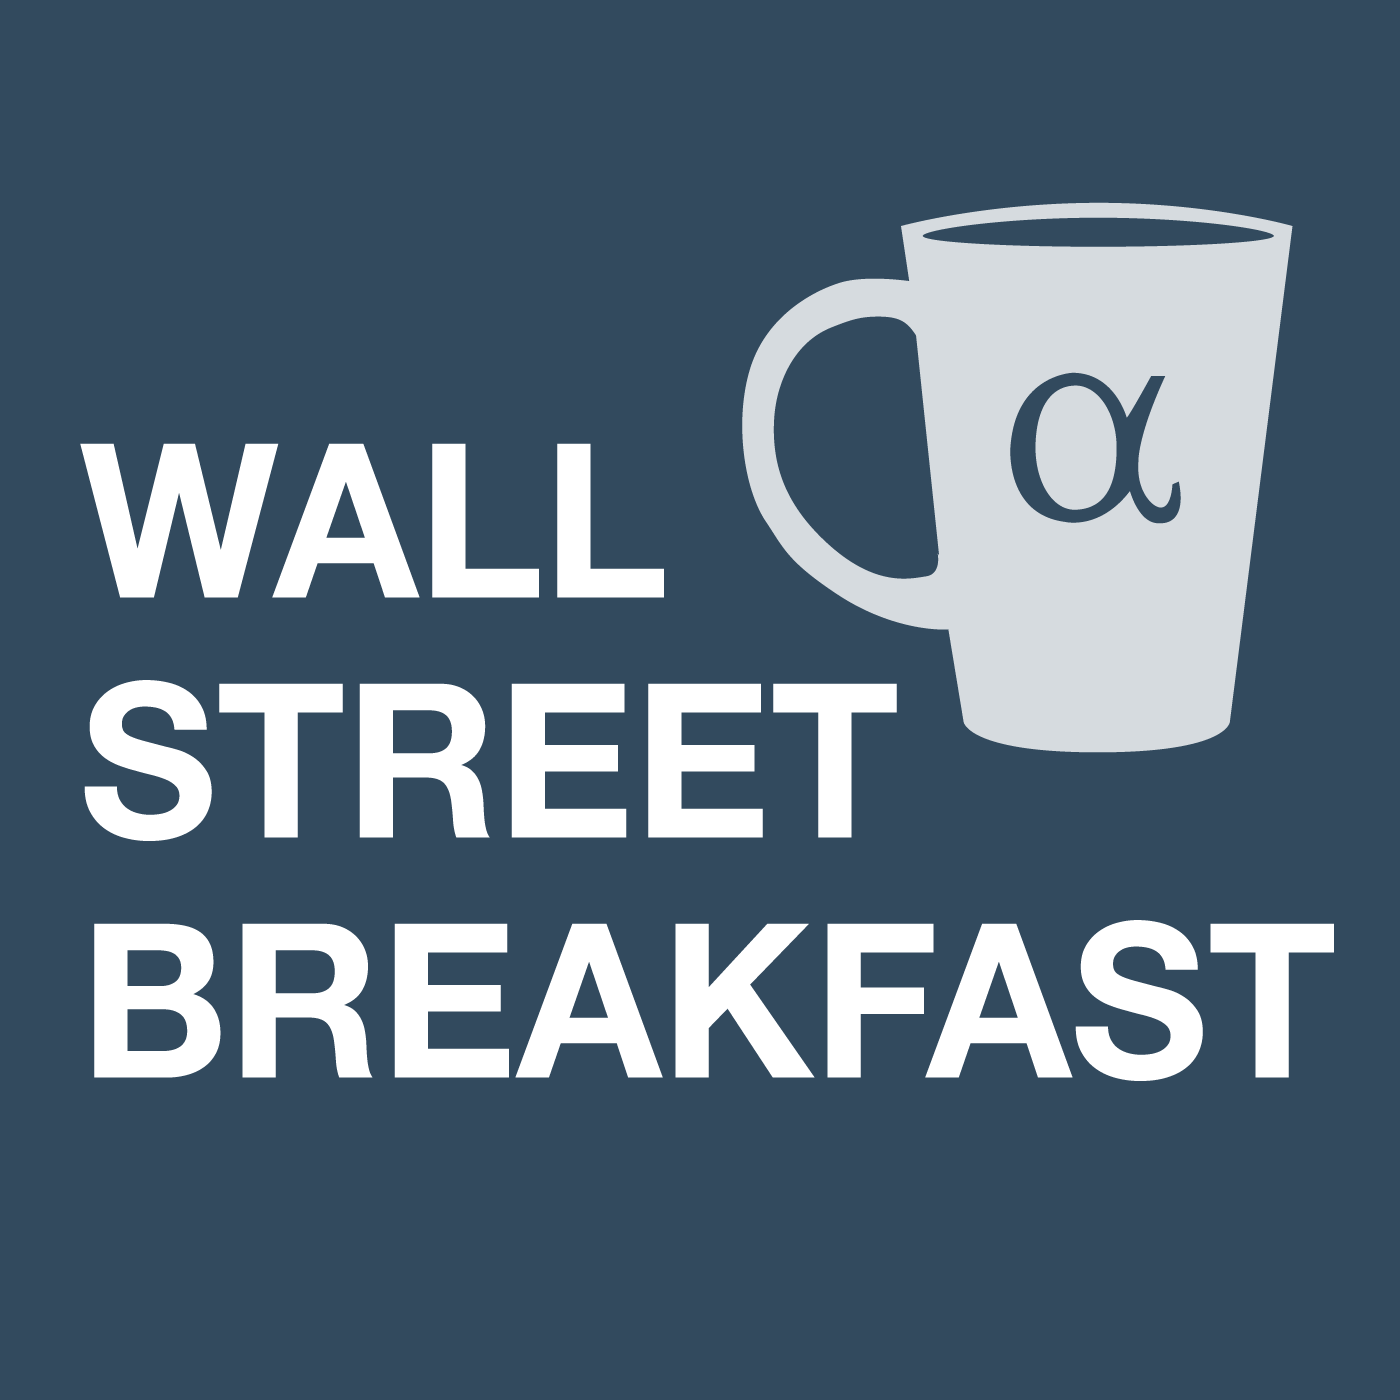 Wall Street Breakfast July 1: USMCA Trade Deal Replaces NAFTA